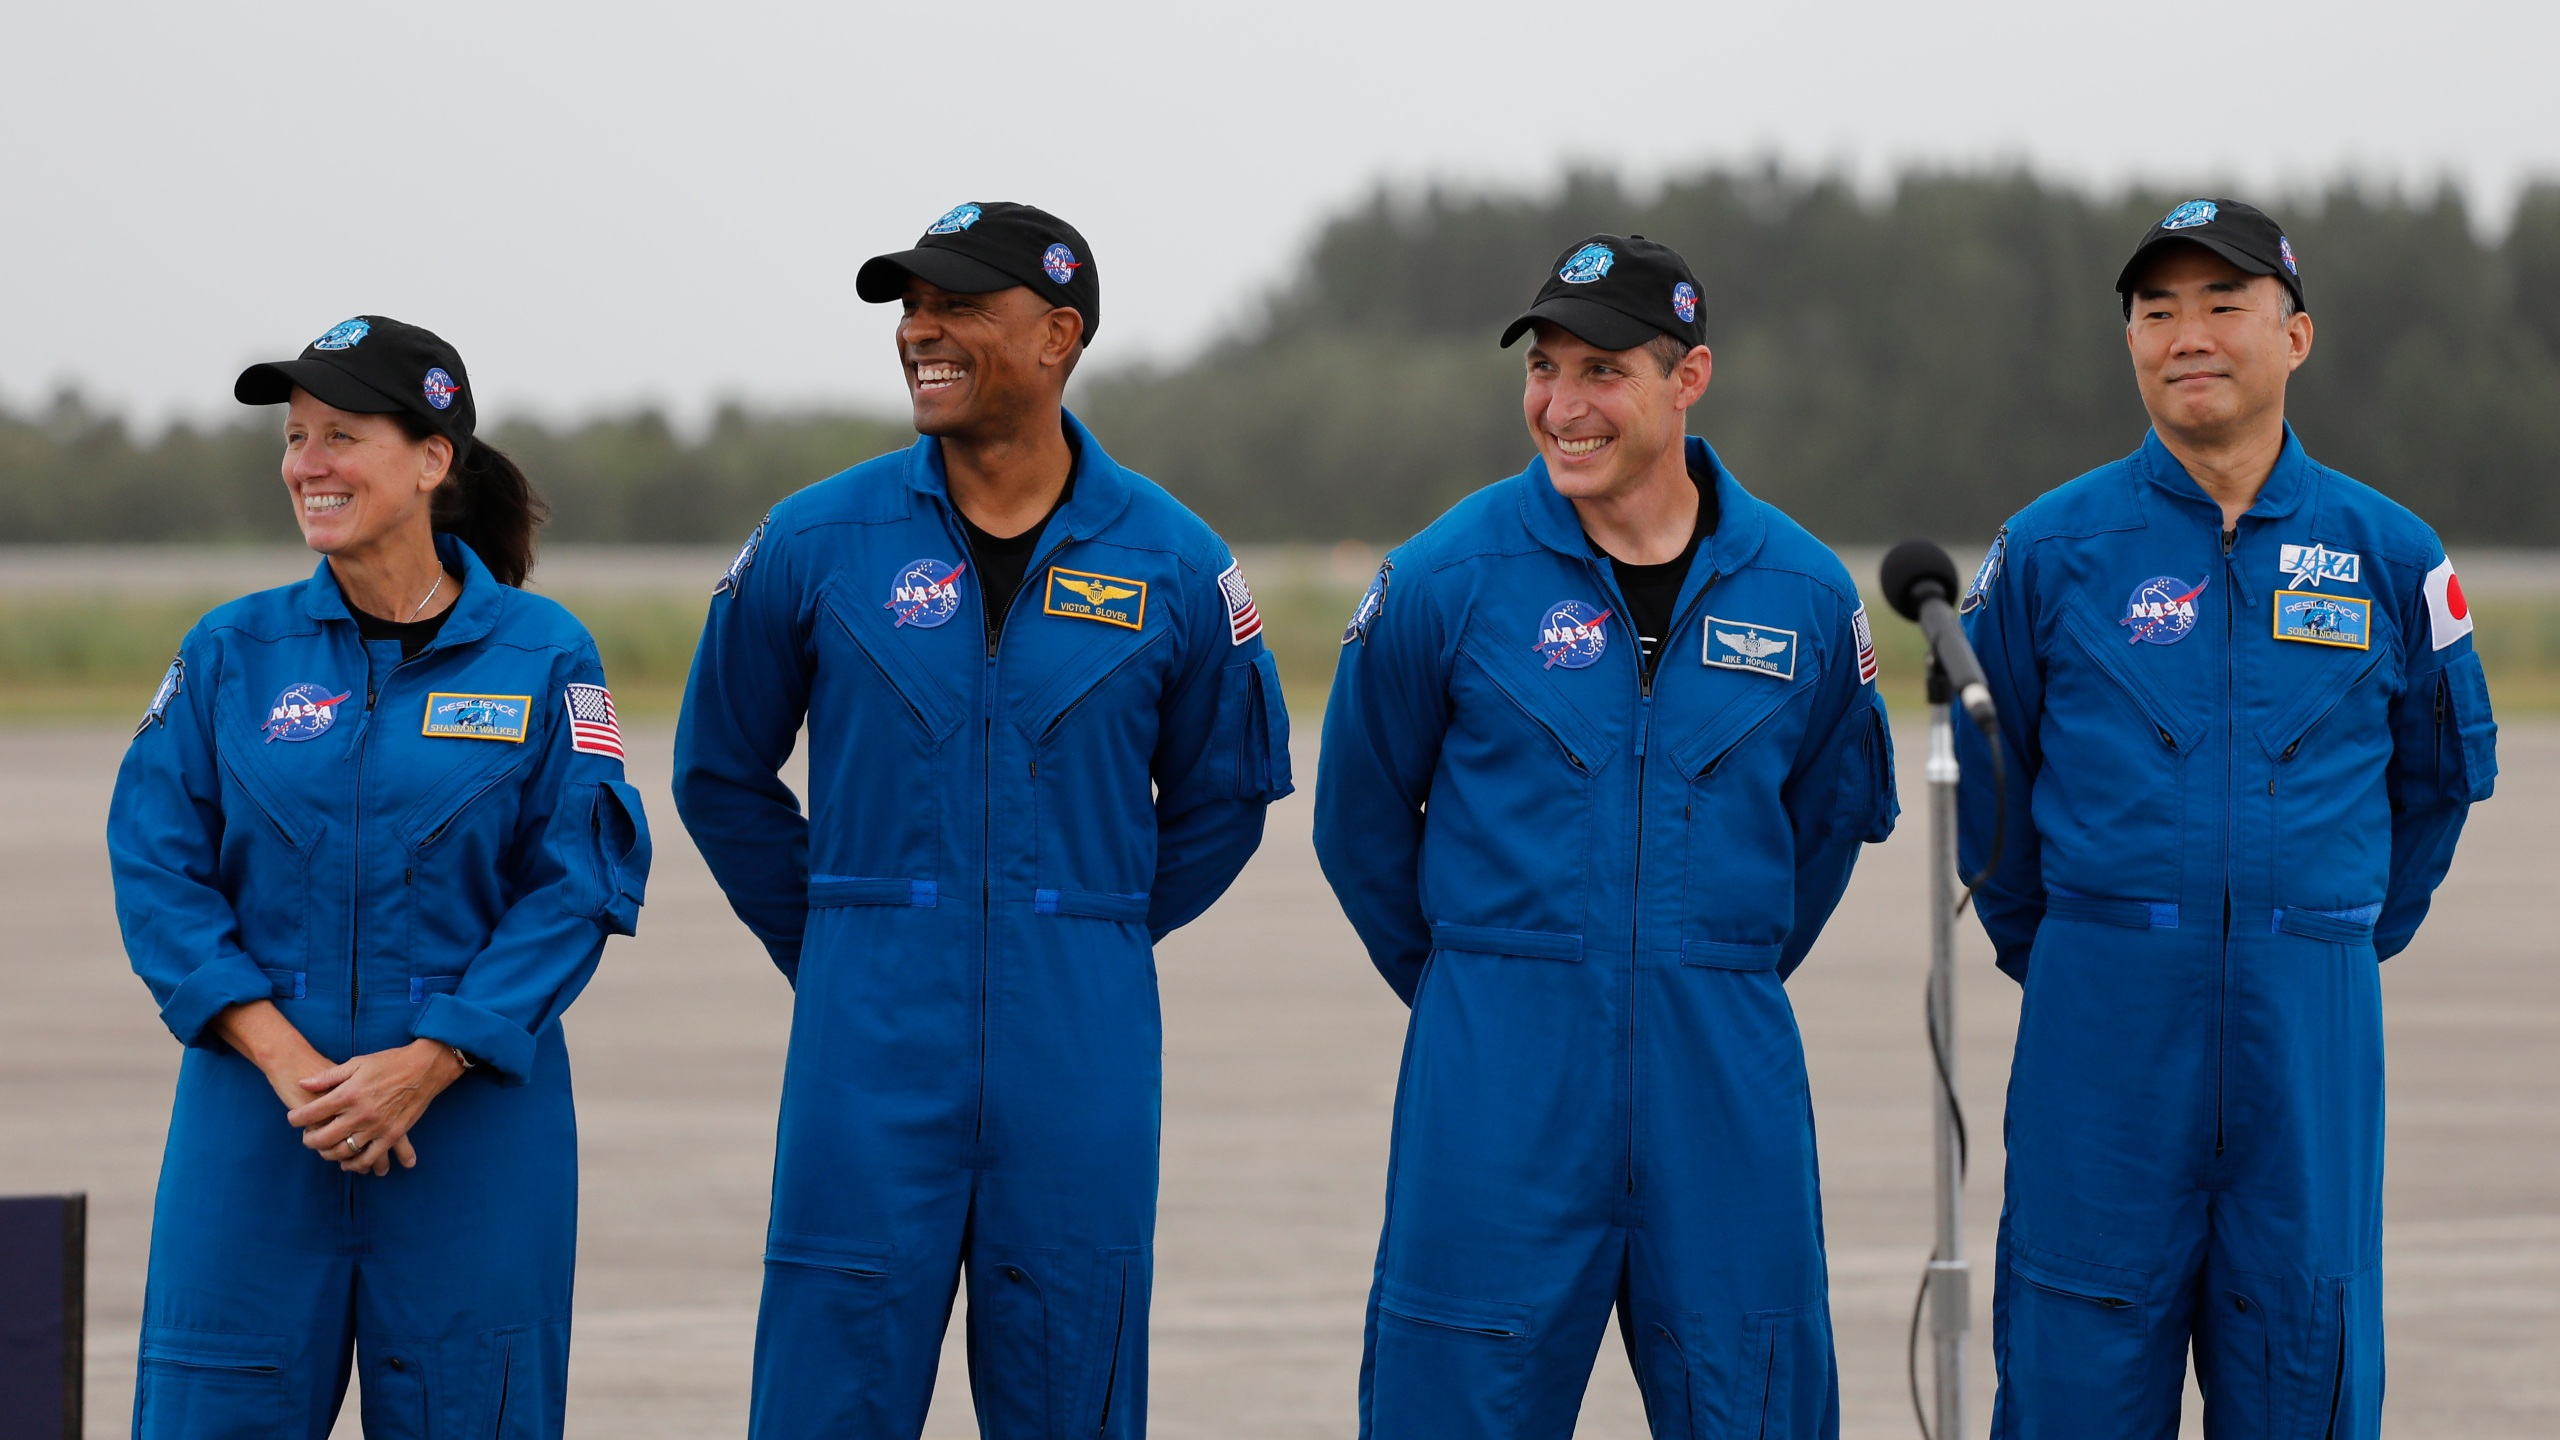 NASA Astronauts from left Shannon Walker, Victor Glover, Michael Hopkins and Japan Aerospace Exploration Agency Astronaut Soichi Noguchi smile during a news conference after they arrived at the Kennedy Space Center, Sunday, Nov. 8, 2020, in Cape Canaveral, Fla. (AP Photo/Terry Renna)